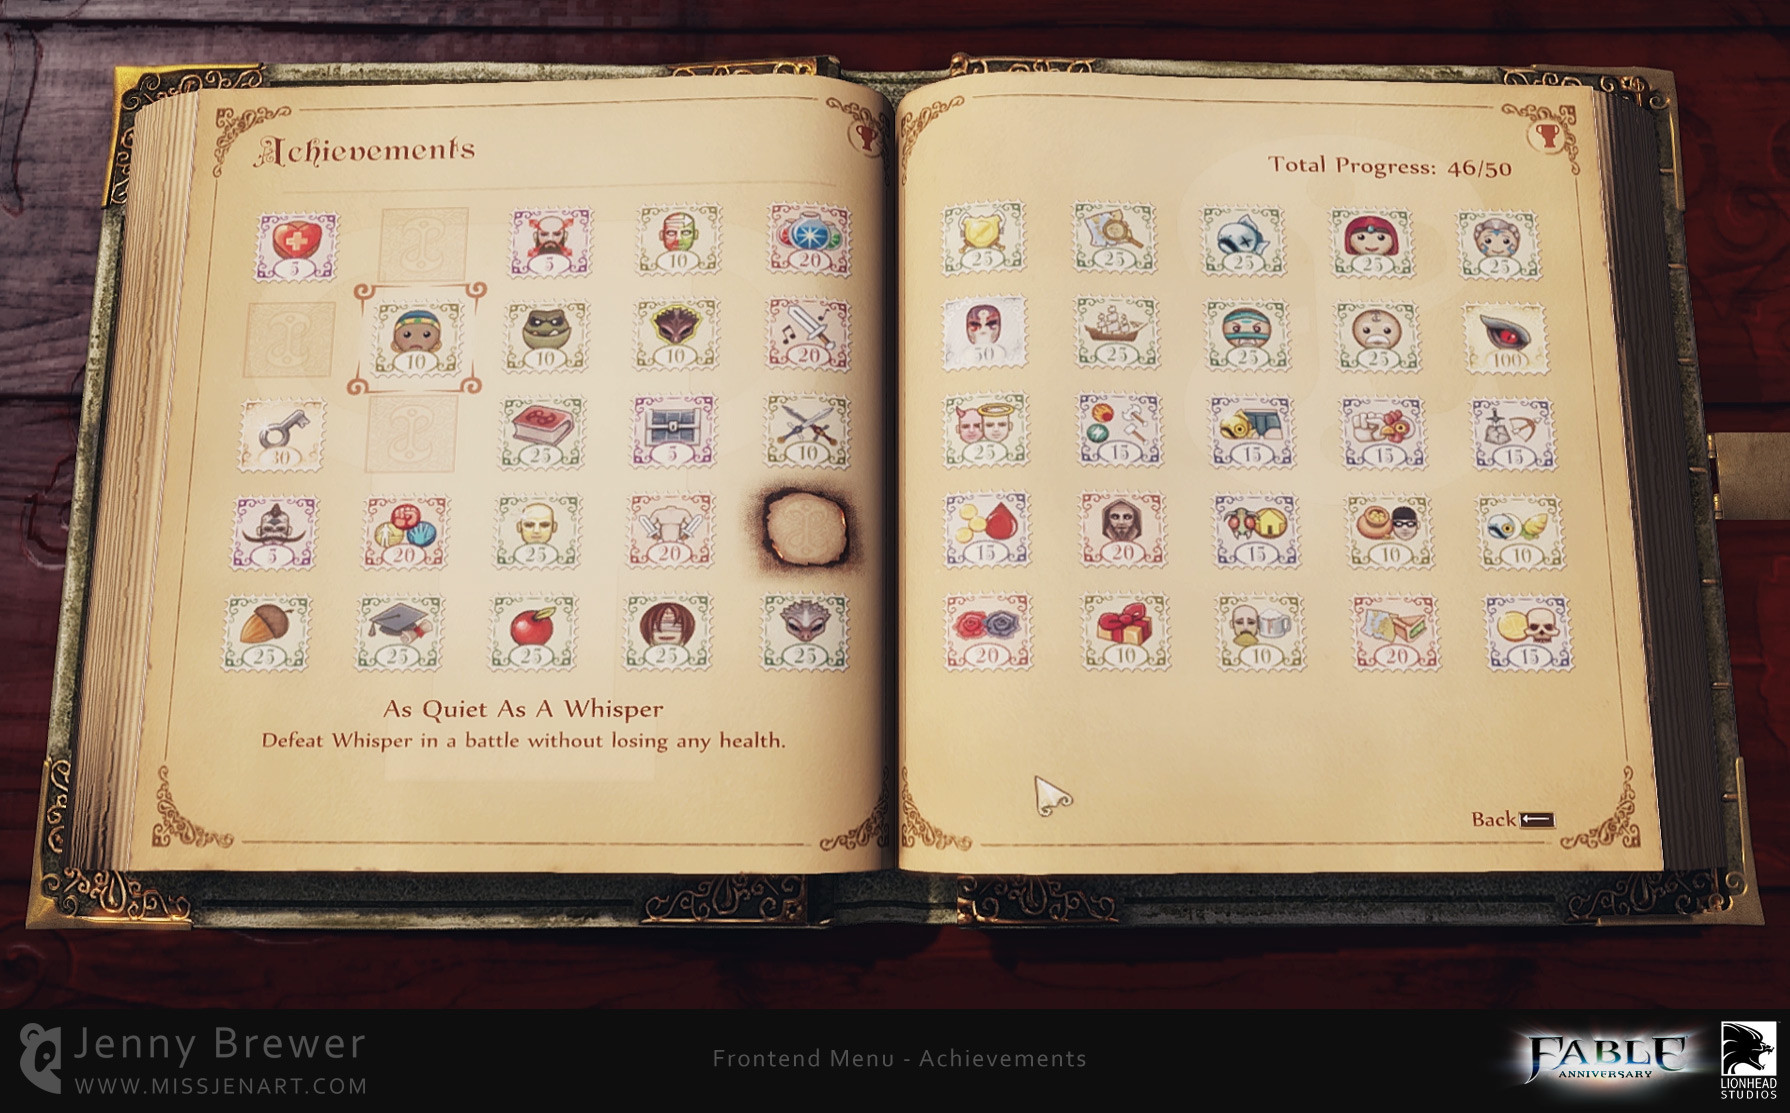 Many Achievements have an either/or element to them, whichever choice the player makes will show the stamp image that is relevant to their actions in the game.